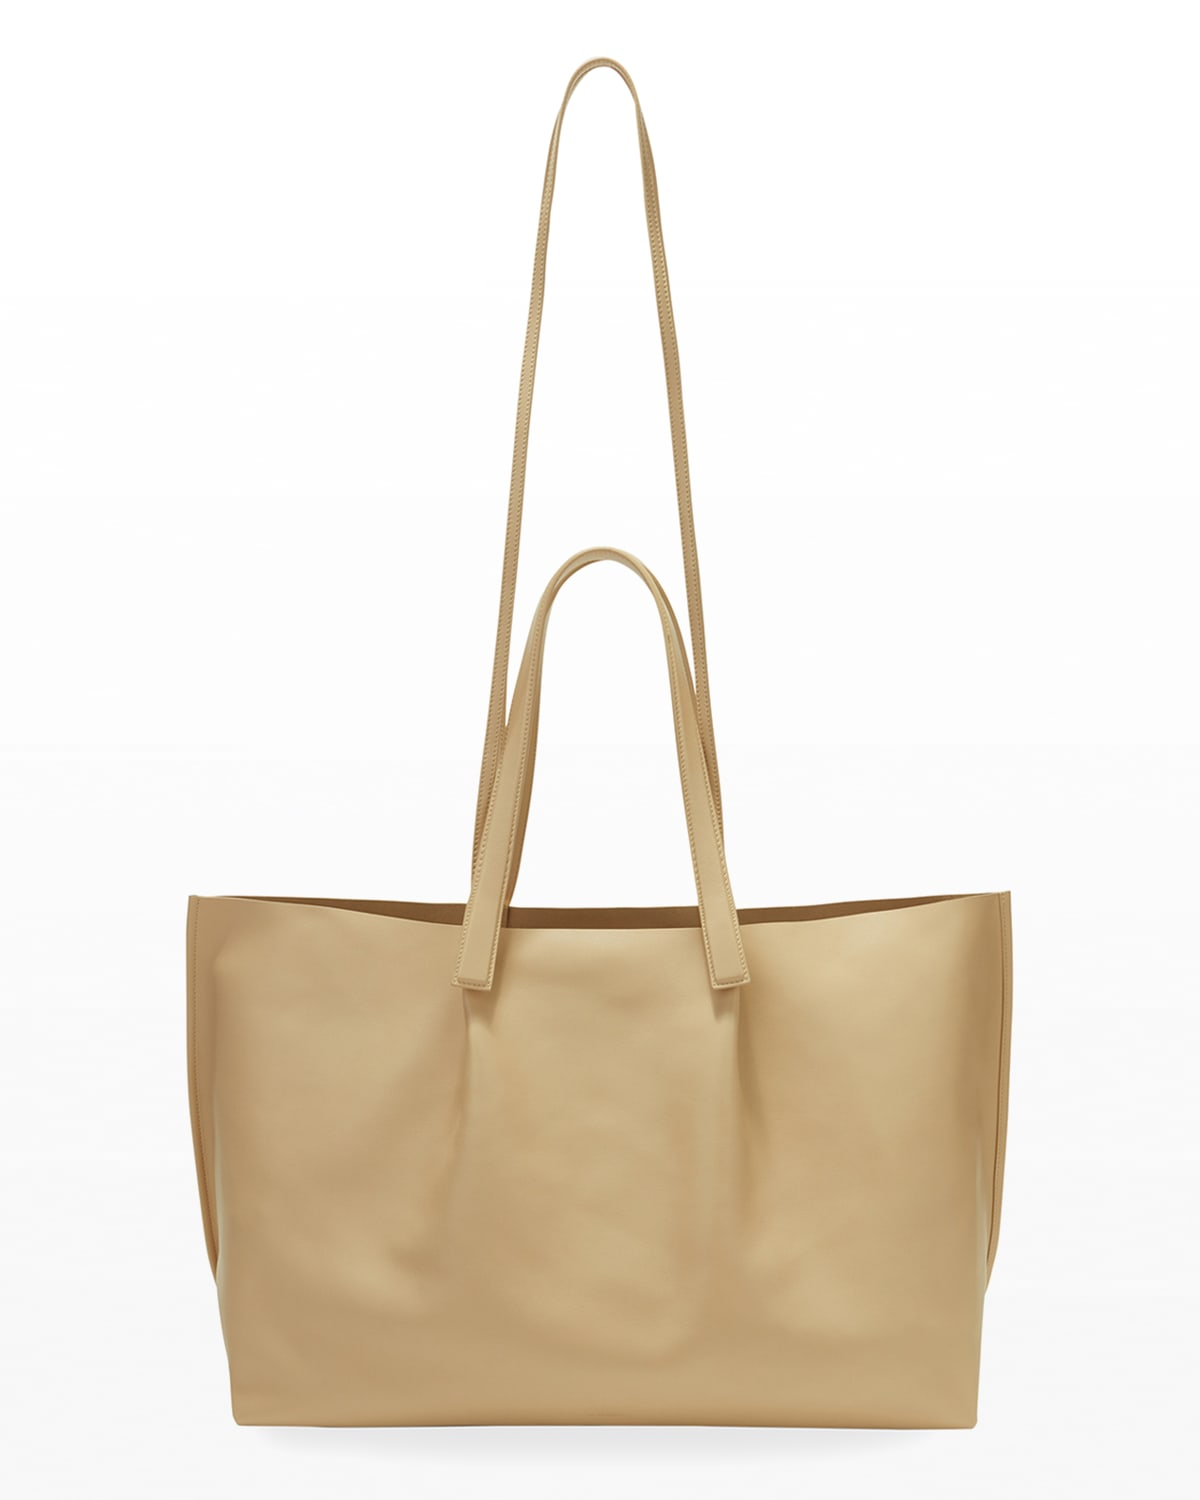 Origami Leather Tote Bag